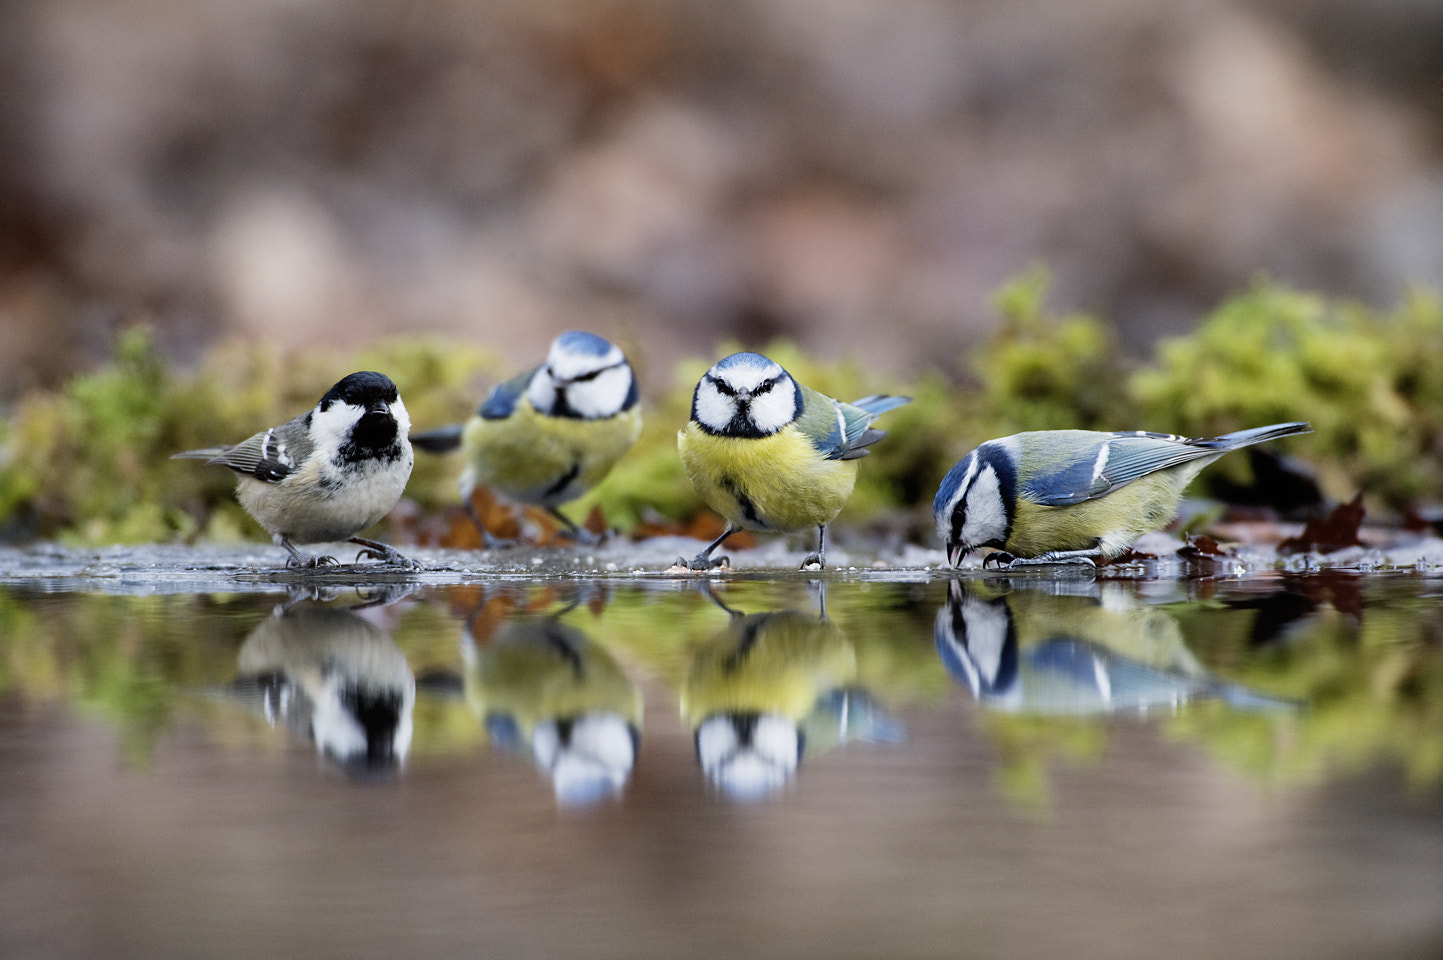 Photograph Taking a drink by Craig Churchill on 500px